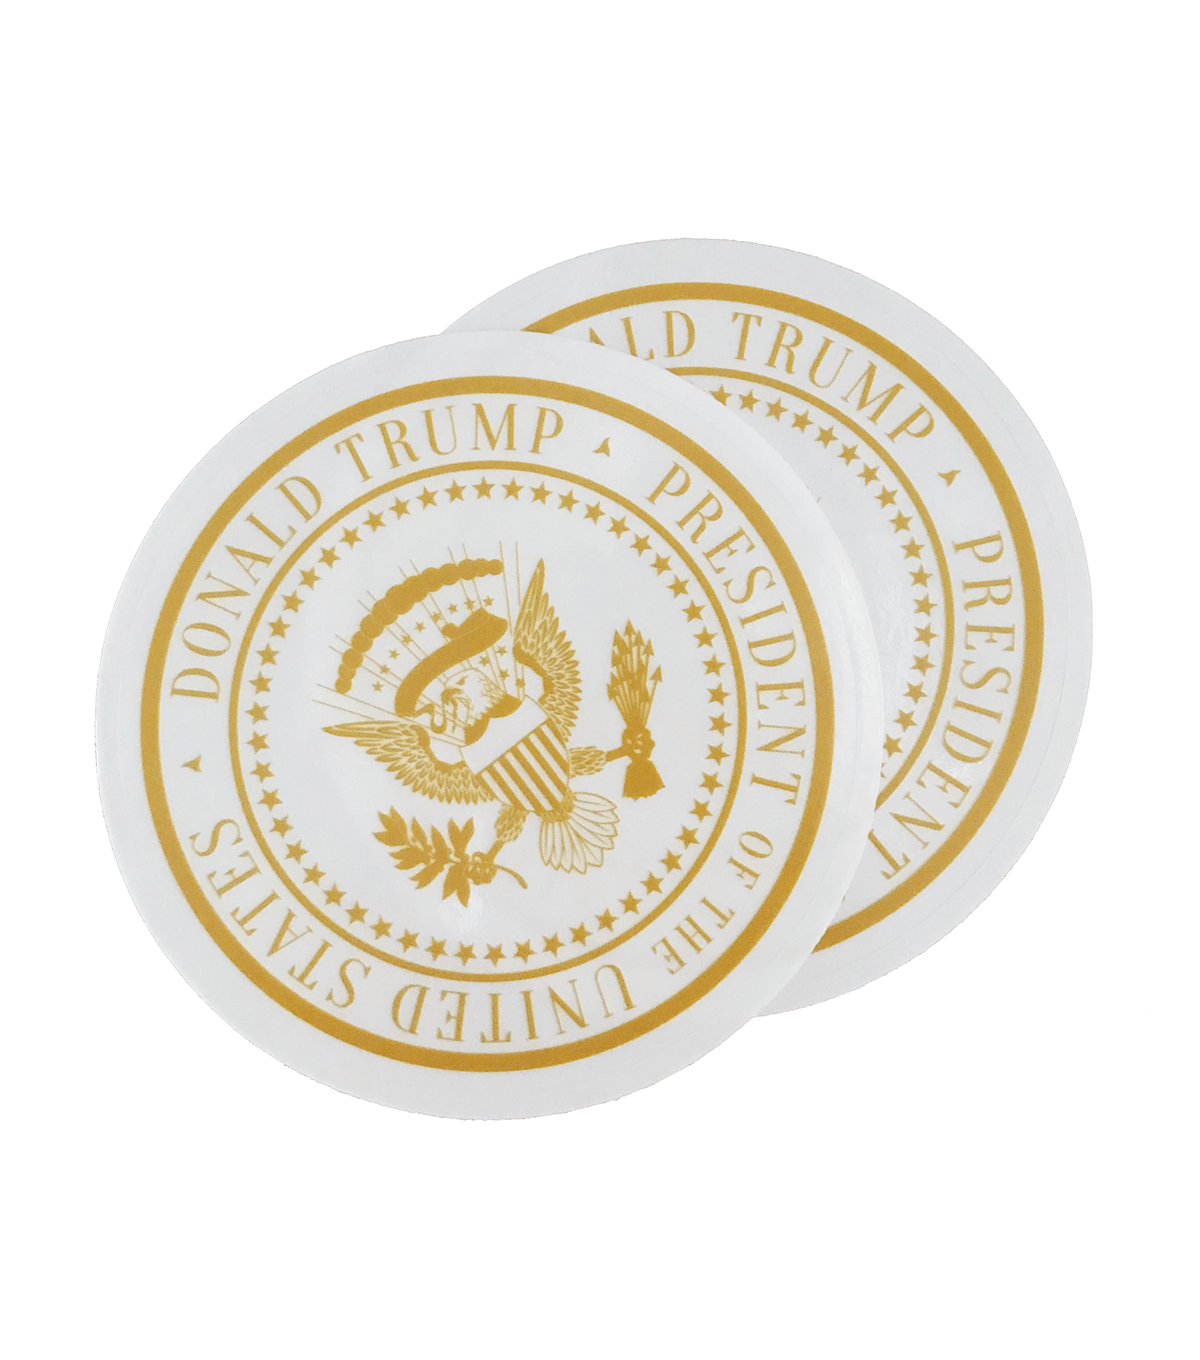 Presidential Seal Sticker Decal 2-Pack